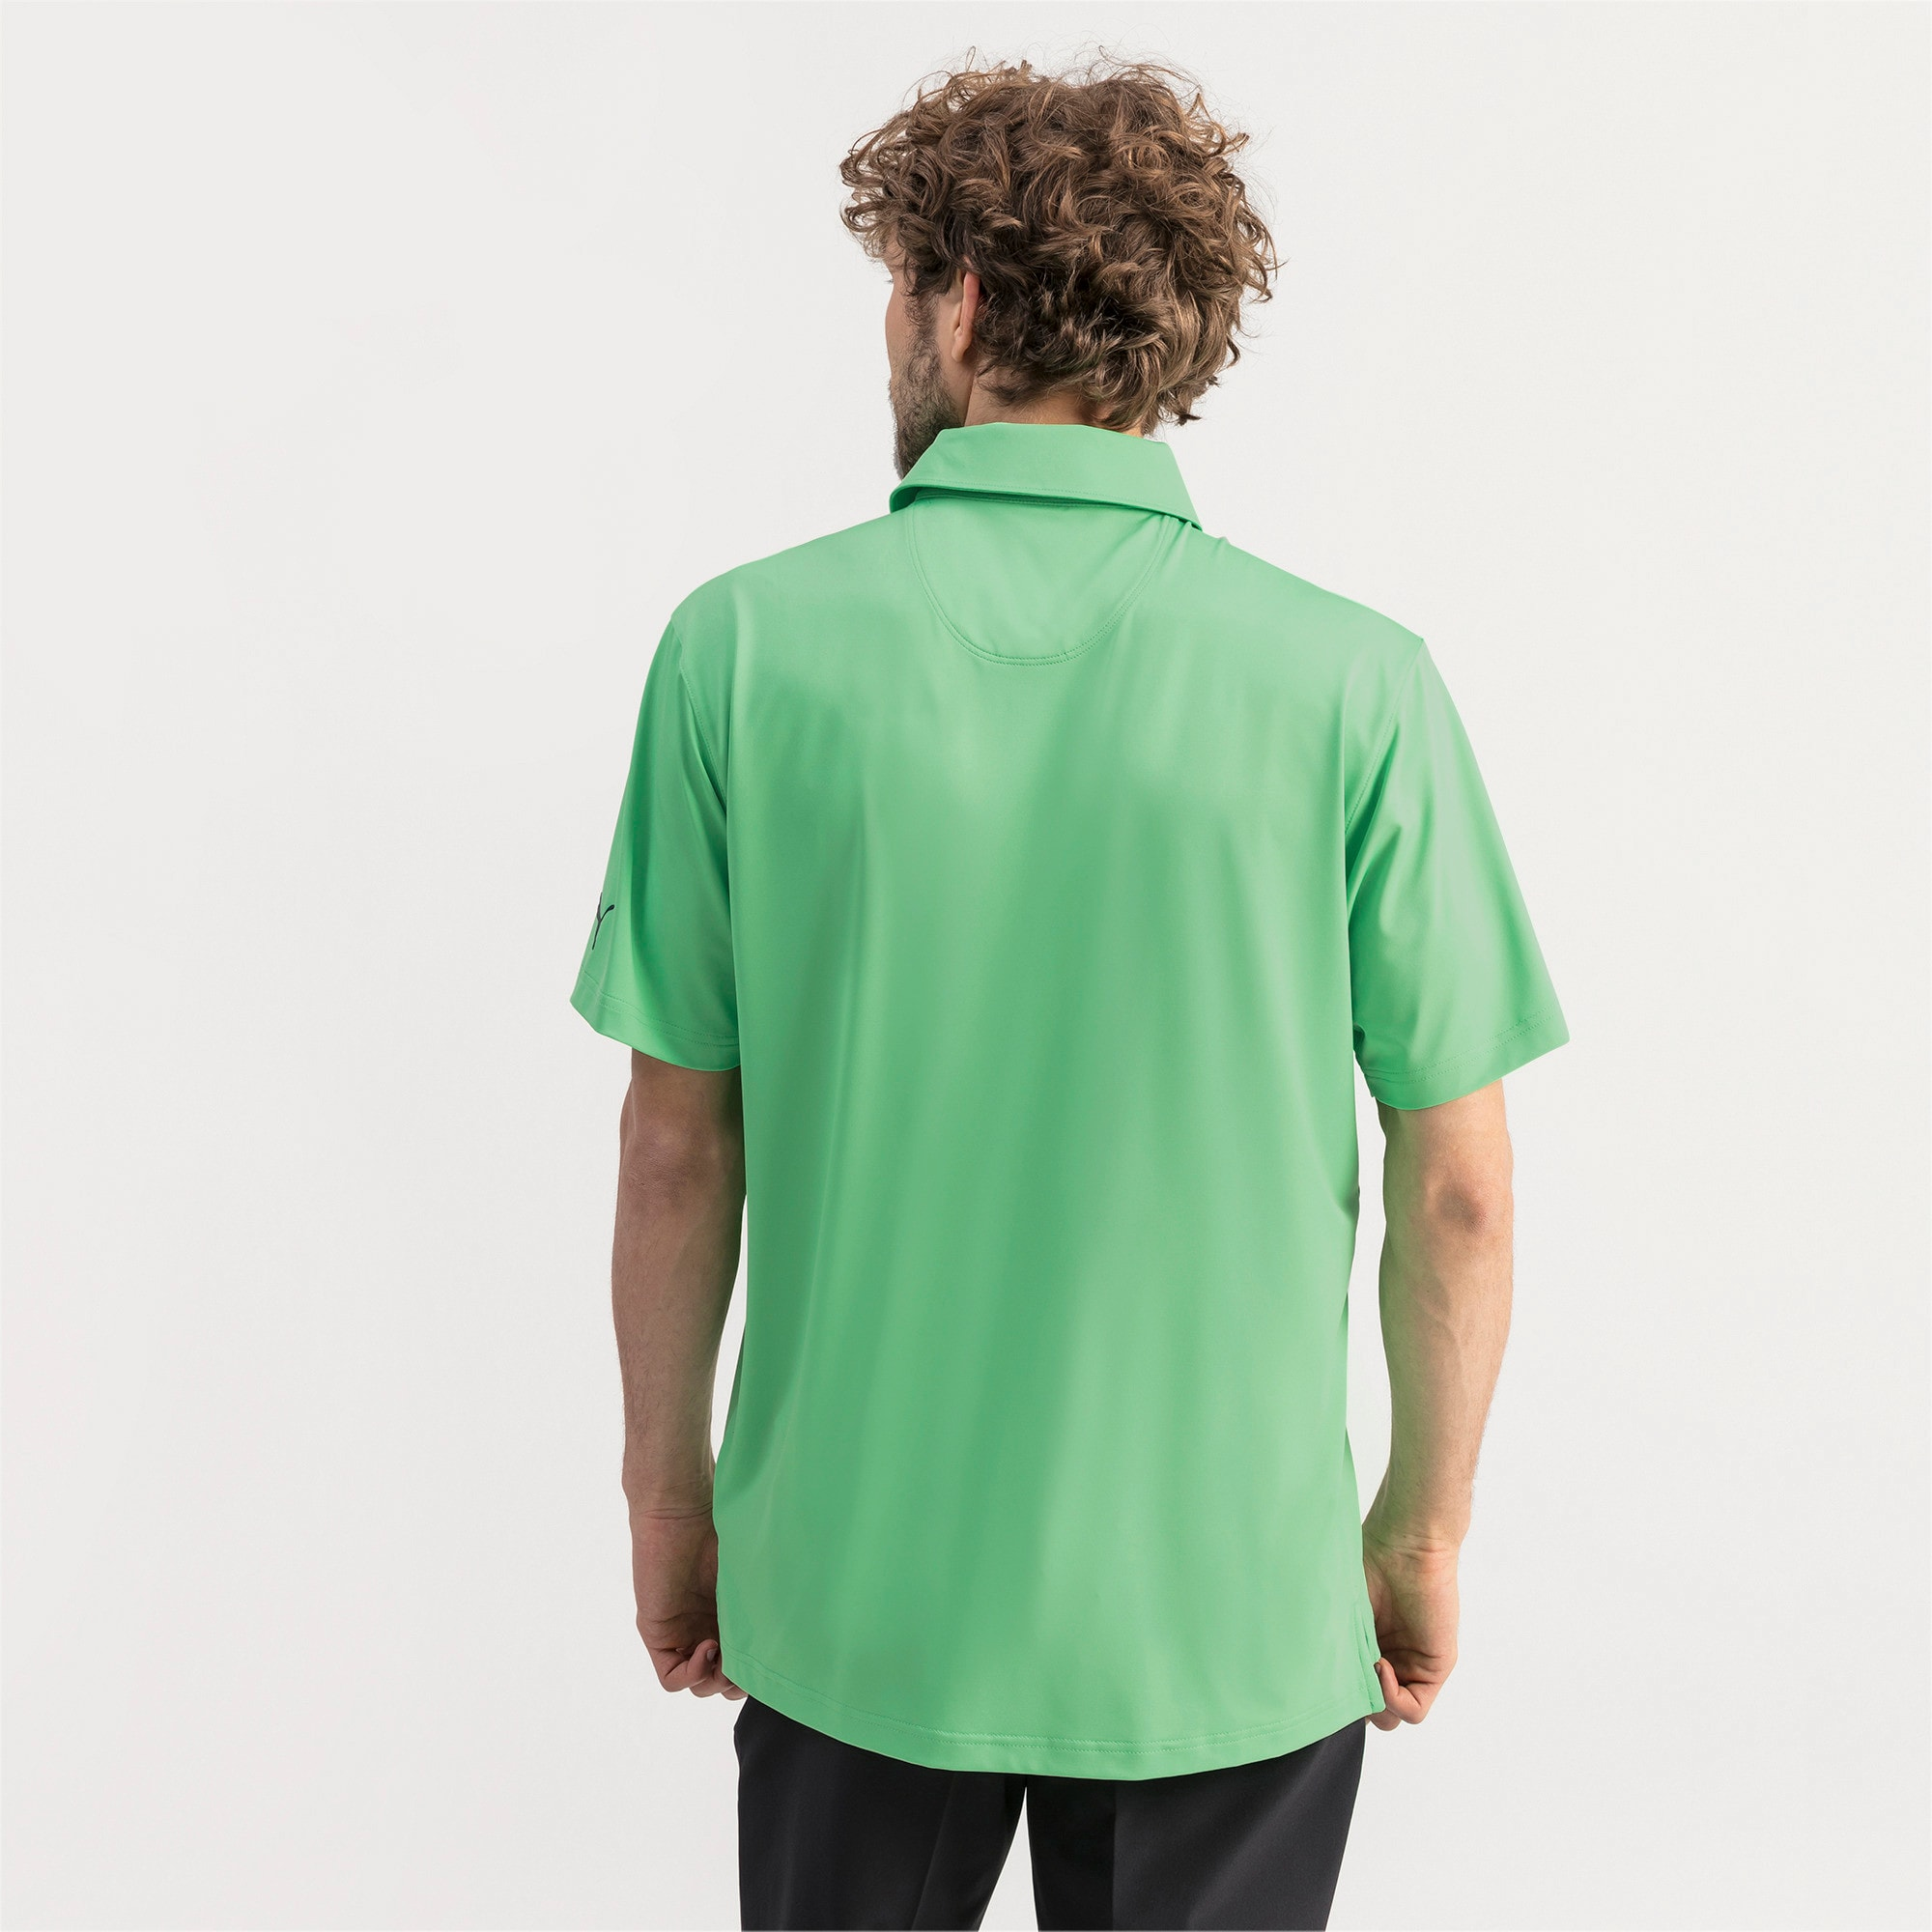 Thumbnail 2 of Donegal Men's Golf Polo, Irish Green, medium